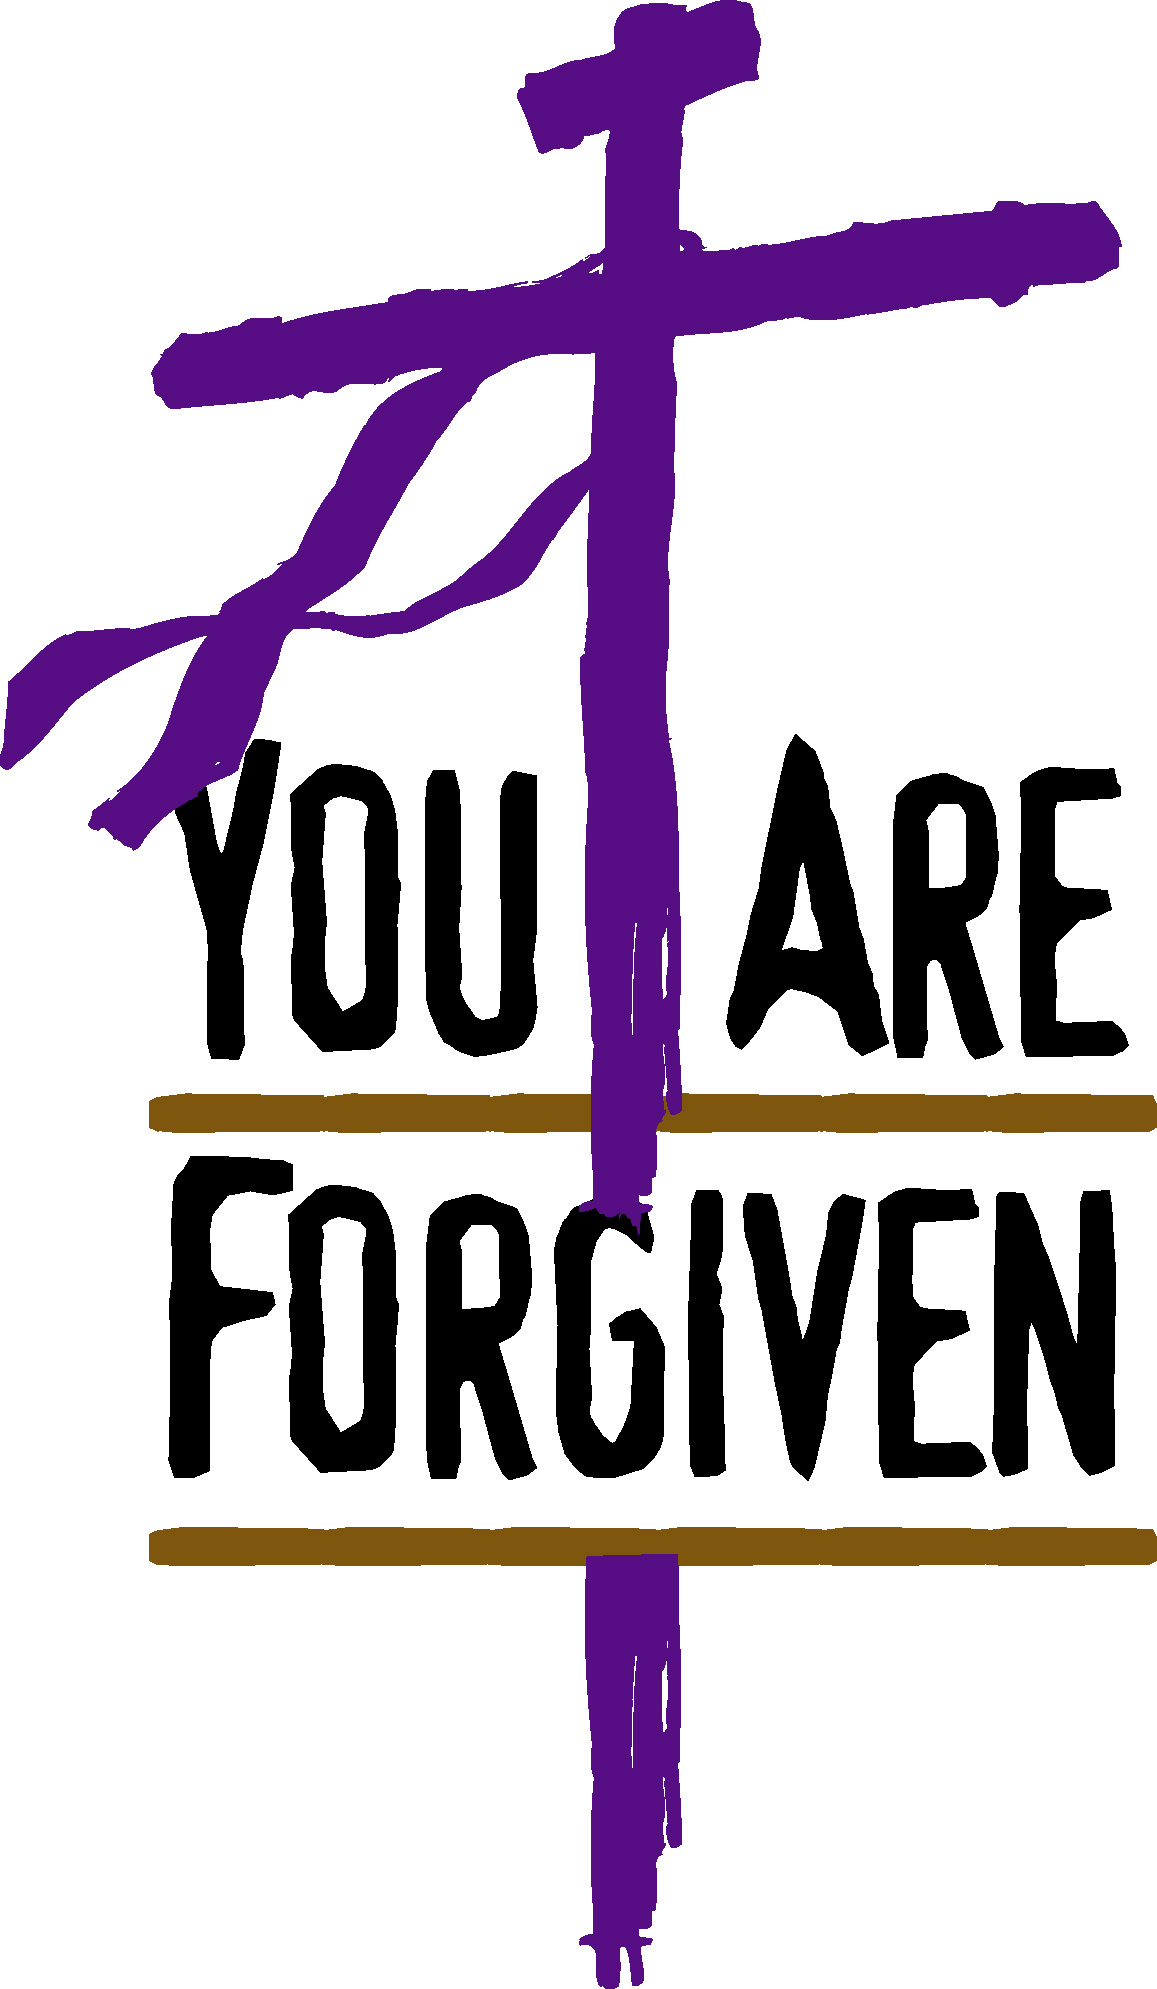 lent clipart at getdrawings com free for personal use lent clipart rh getdrawings com